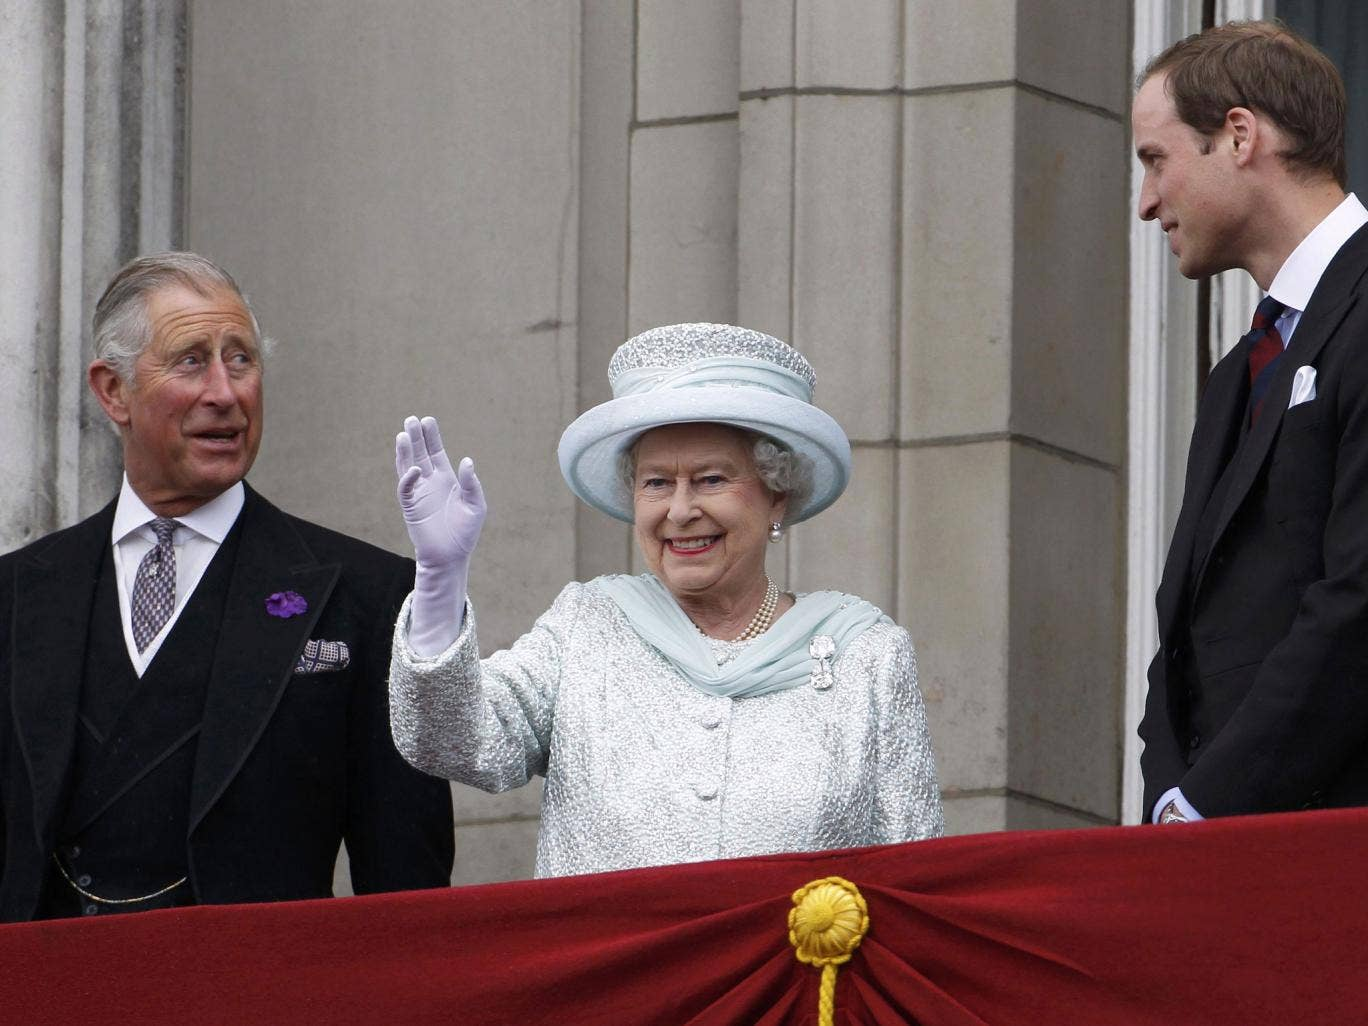 Here to stay: The Queen confirmed her durability with the Diamond Jubilee